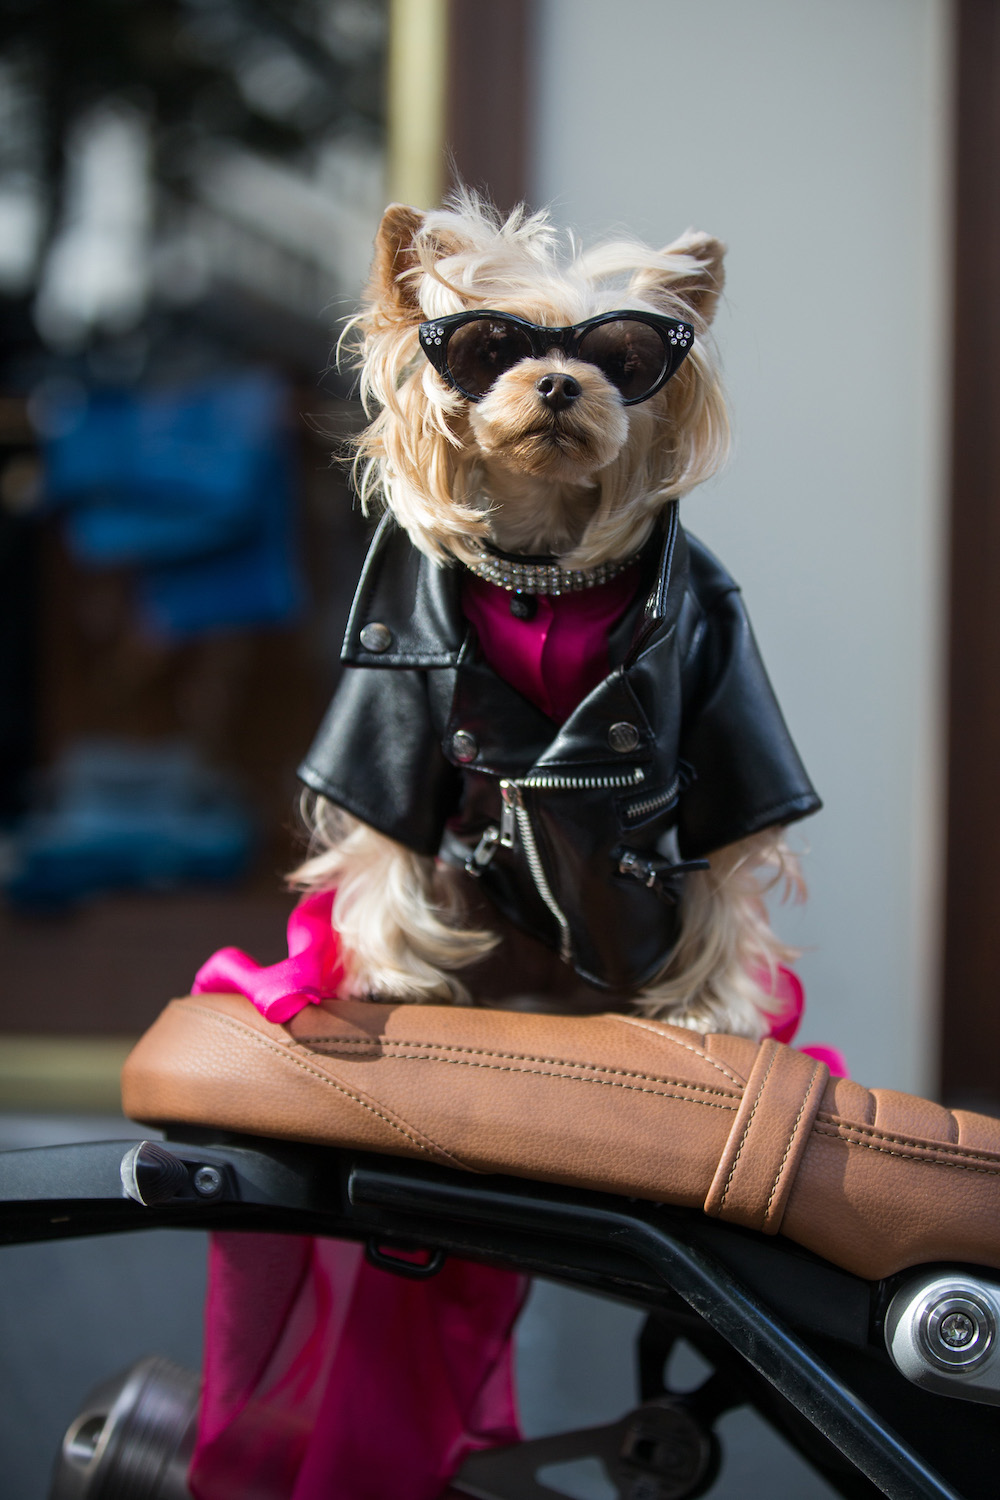 PARIS, FRANCE - OCTOBER 02:  Little Lola Sunshine the dog wears a leather jacket, black sunglasses, and a pink dress outside the Valentino show on October 2, 2016 in Paris, France.  (Photo by Melodie Jeng/Getty Images)